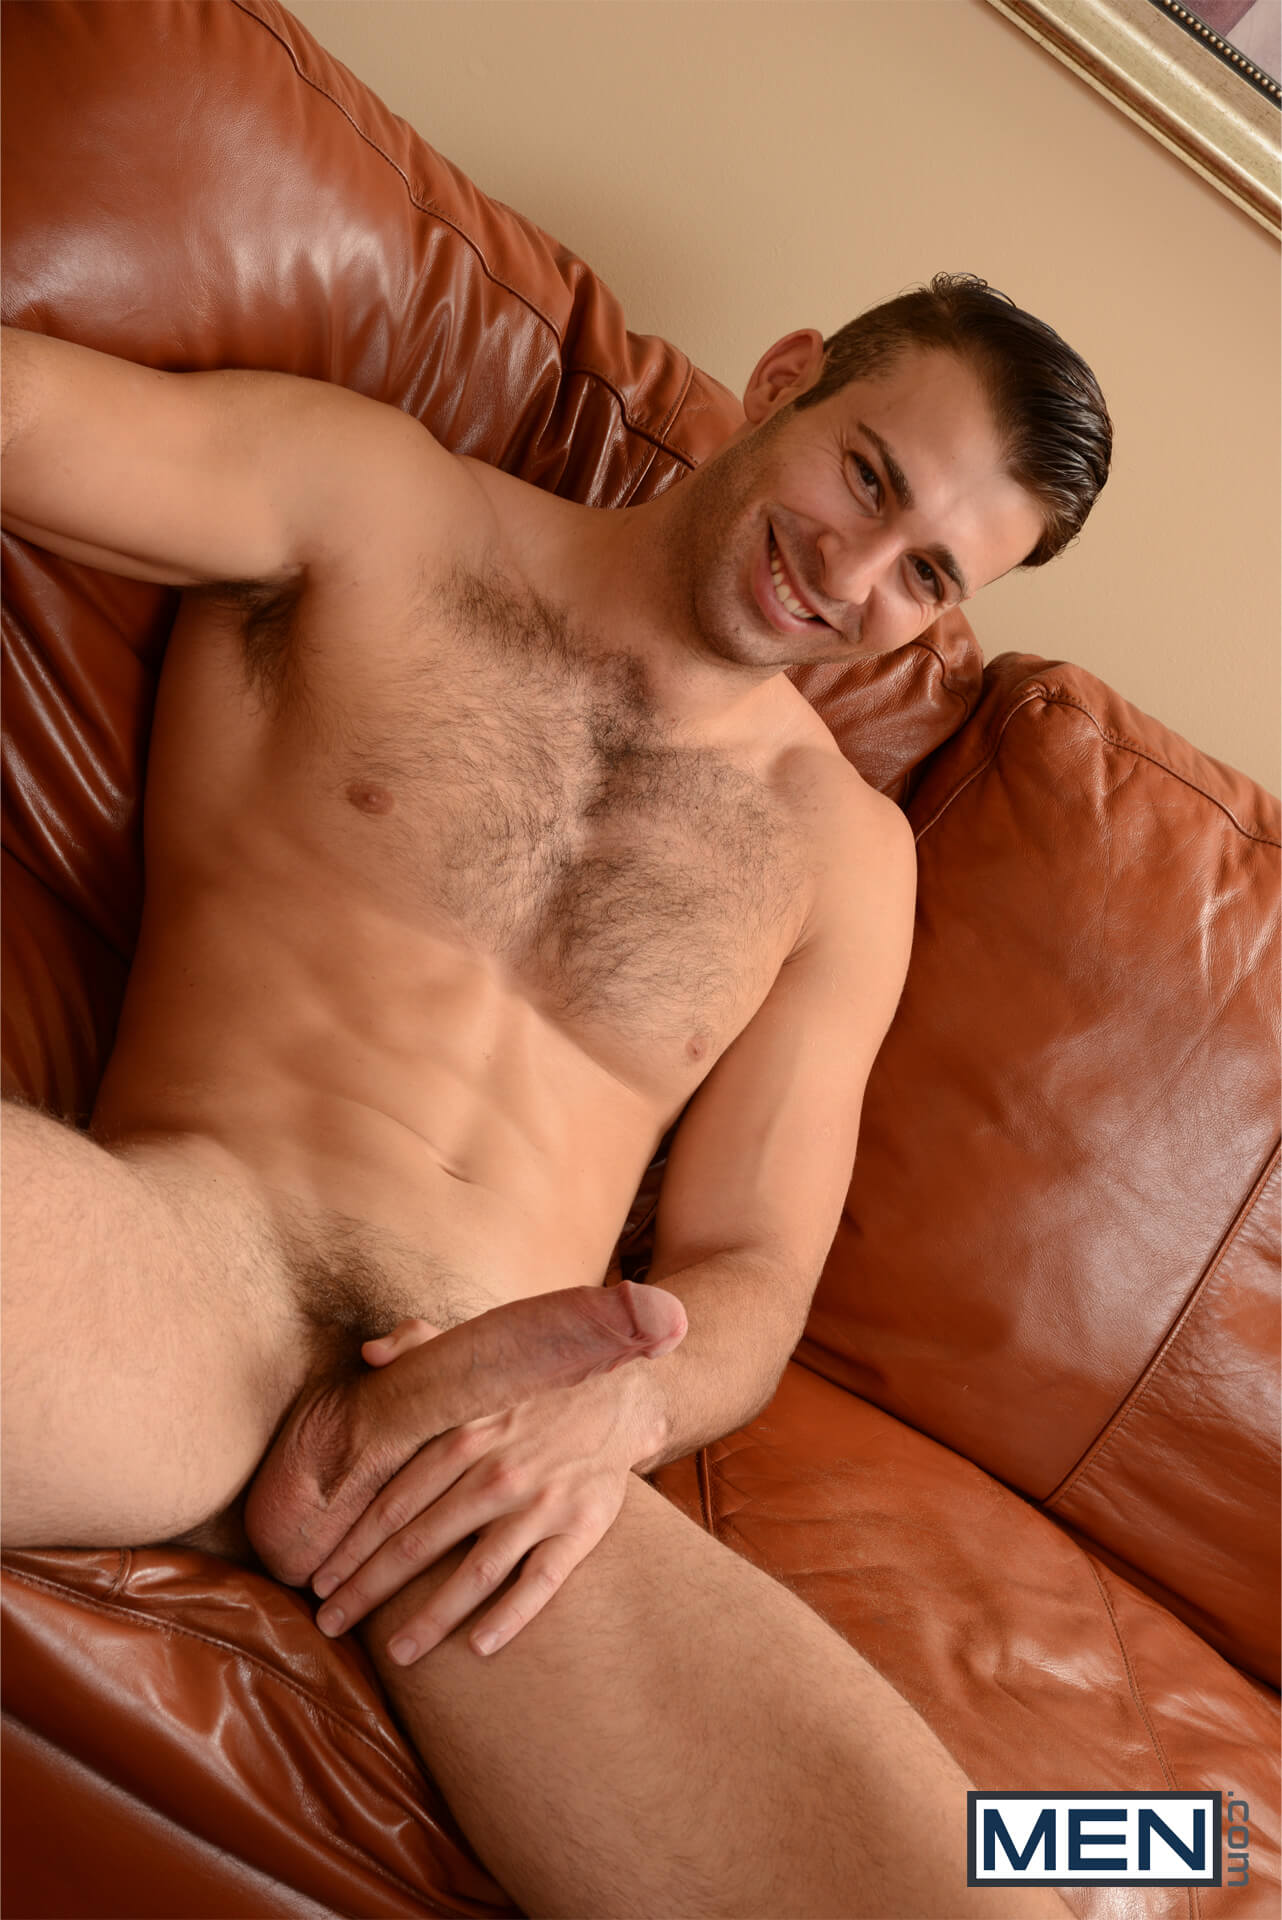 men str8 to gay not brothers yet part 1 jarec wentworth jared summers gay porn blog image 1